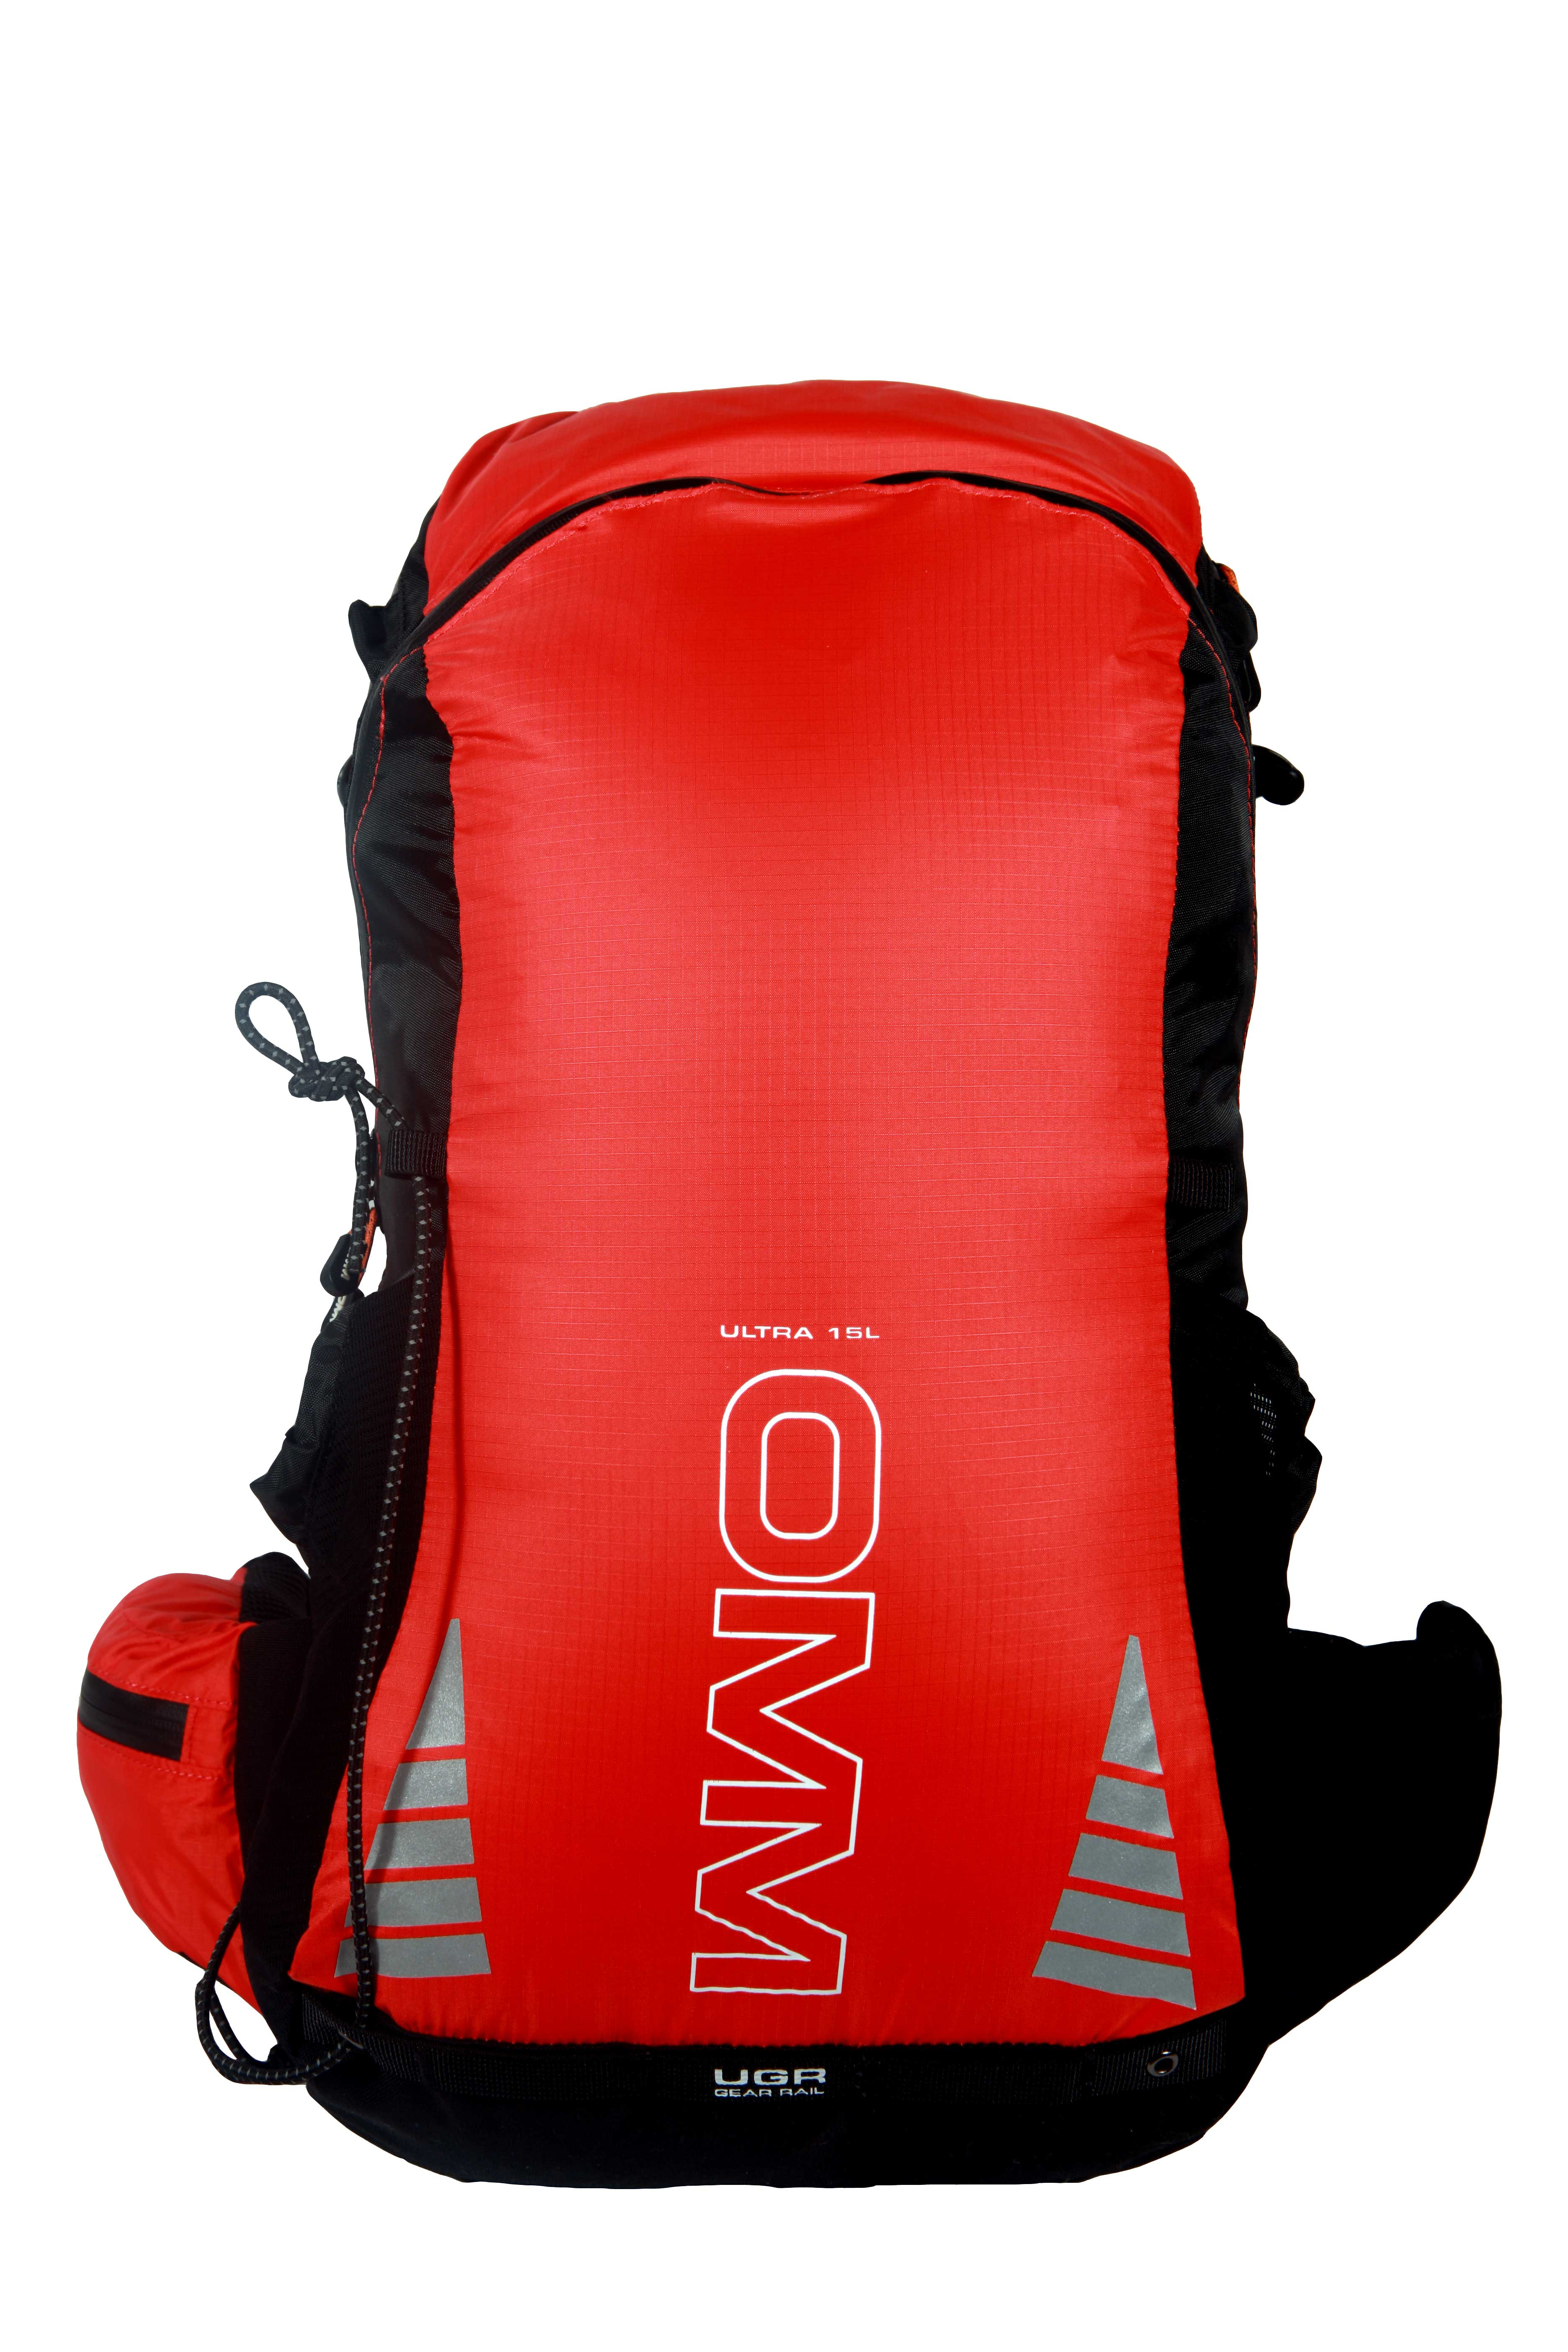 OMM Ultra 15 Marathon Pack | Travel bags